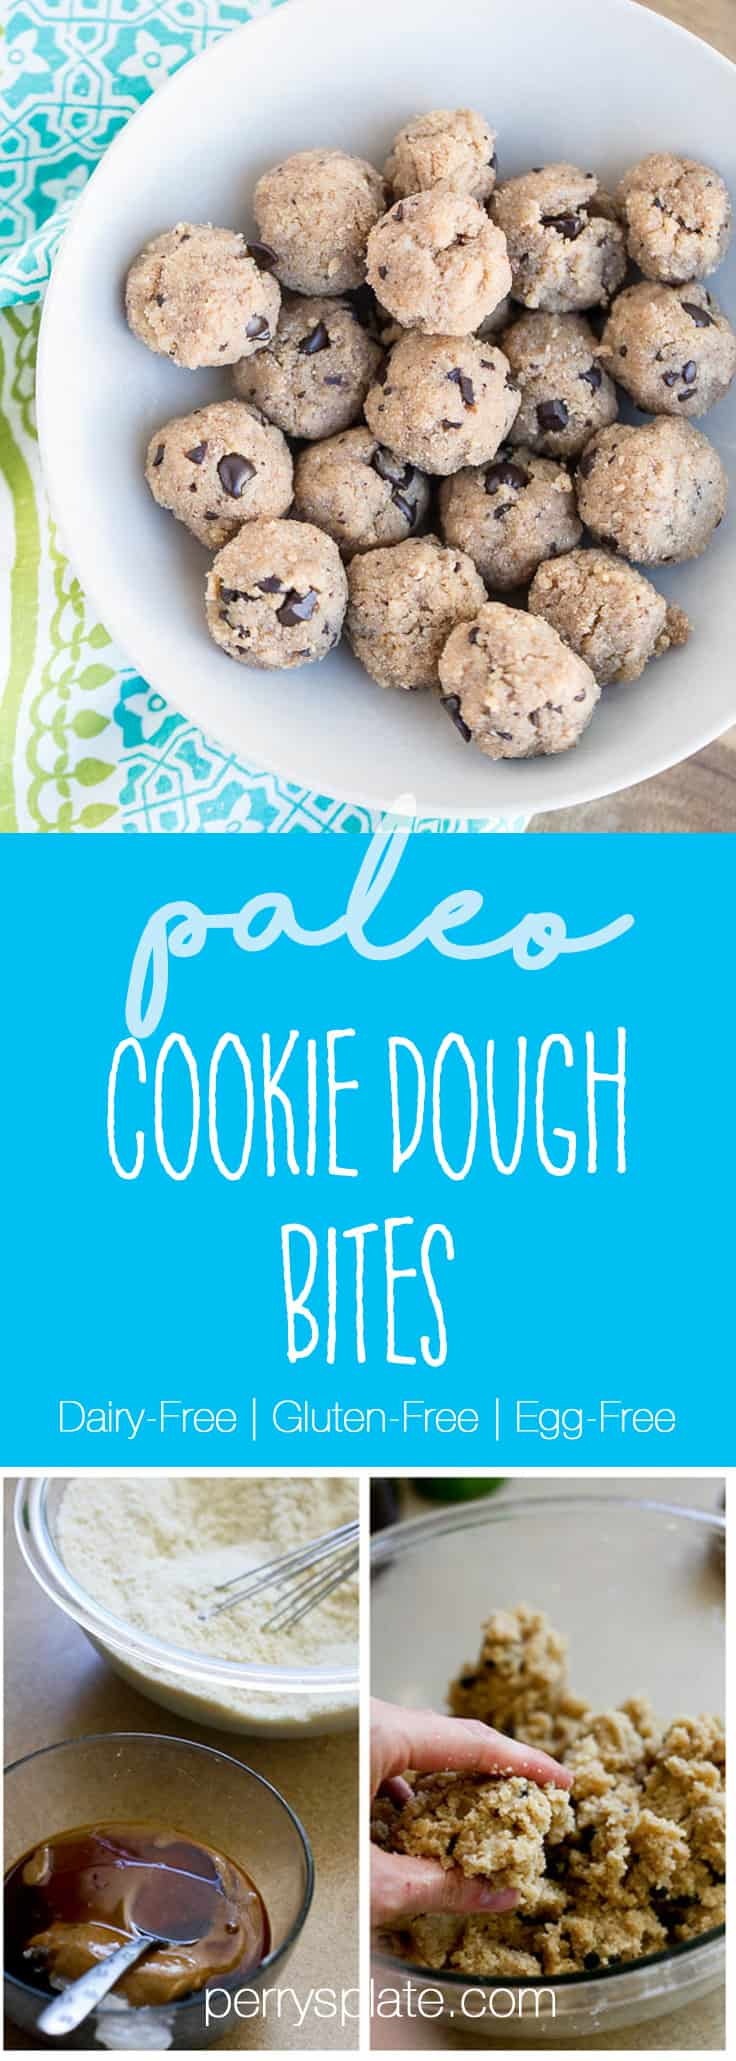 Paleo Cookie Dough Bites | paleo treats | gluten-free recipes | dairy-free recipes | egg-free recipes